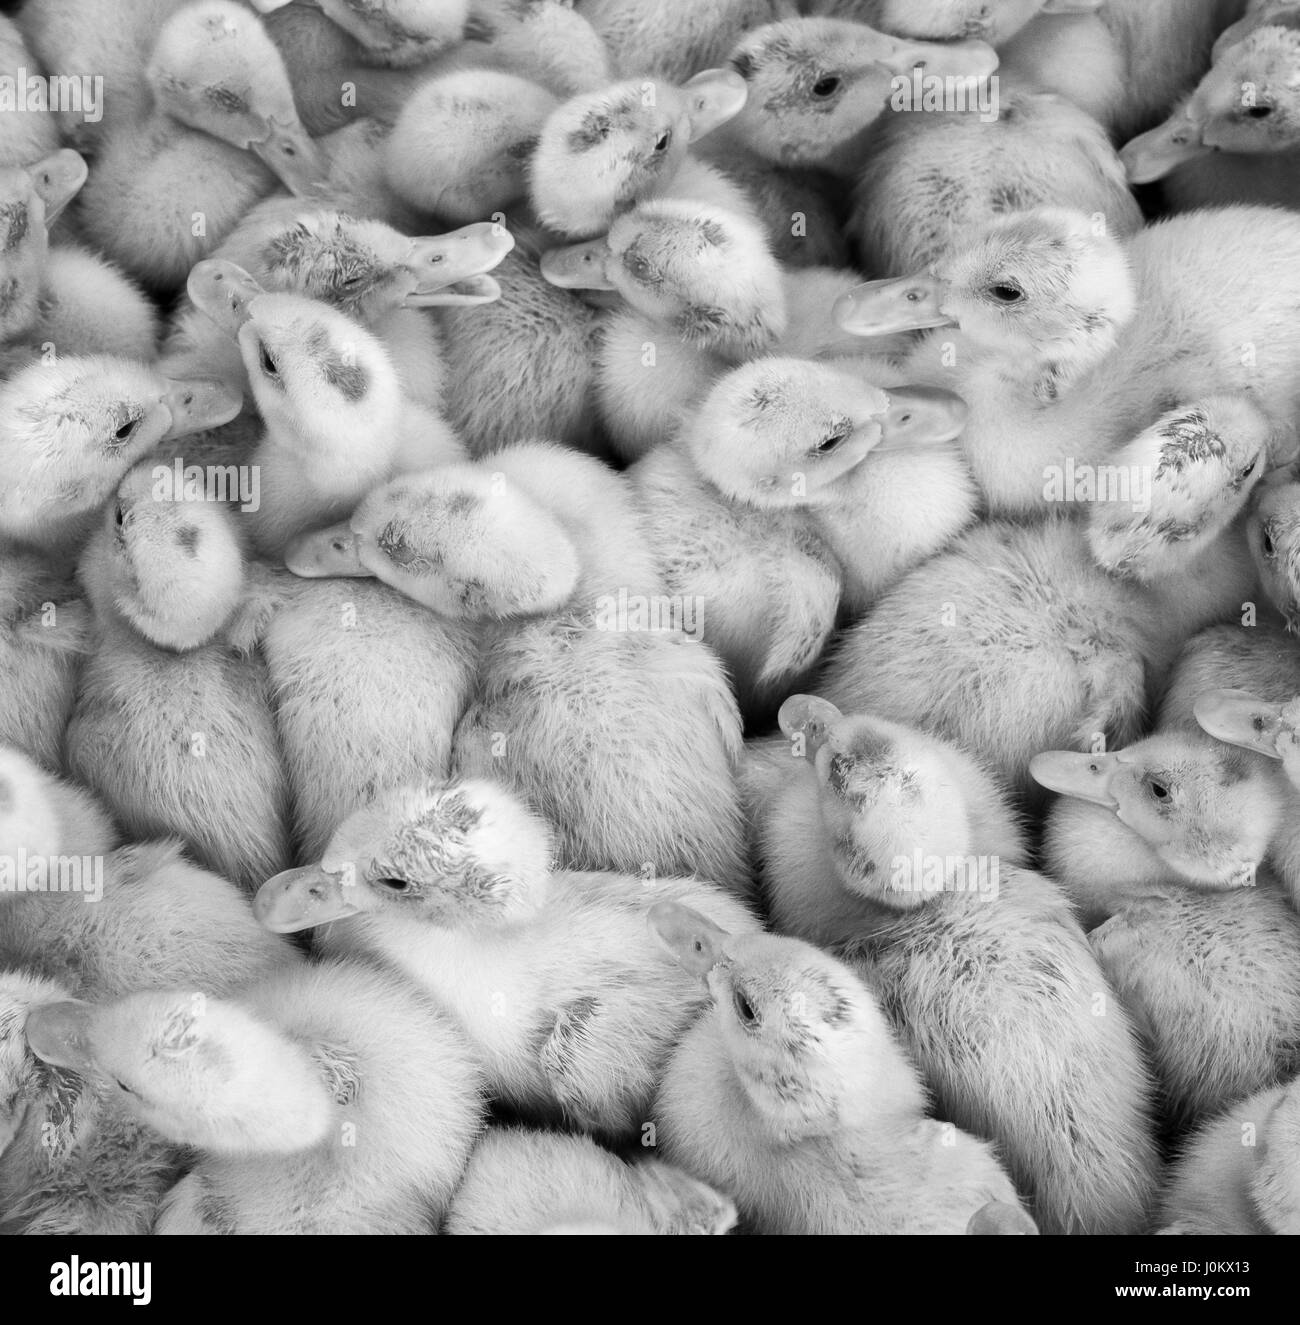 Large group of newly hatched ducklings on a farm, black and white. - Stock Image